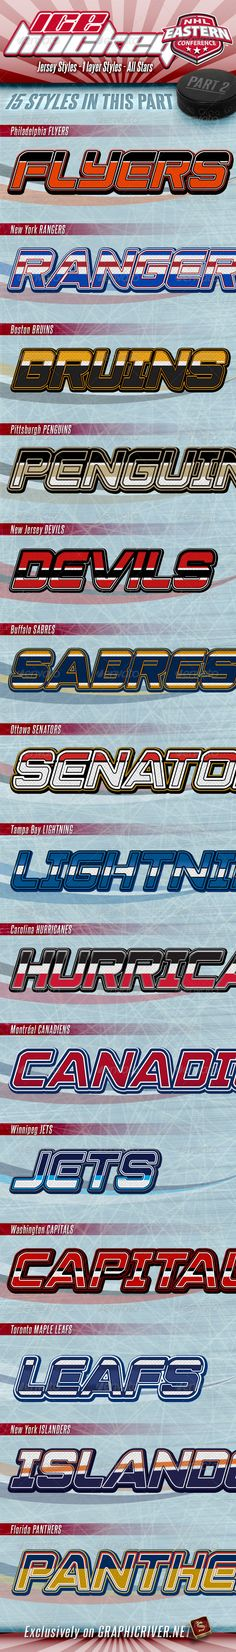 NHL Hockey Jersey Styles - Part 2  #GraphicRiver        NHL Hockey Jersey Photoshop Layer Styles – Part 2 Eastern Conference Teams  NHL Hockey Jersey Photoshop layer styles –are the best for your titles, buttons, shapes, etc. Styles are usable for any Text and it also looks good on Shapes or Buttons.   Check also – Western conference Styles     NHL Hockey Jersey Layer Styles – Features   All styles are made of 1 layer only  Unique Styles  Applicable with just one click  Unique look and…